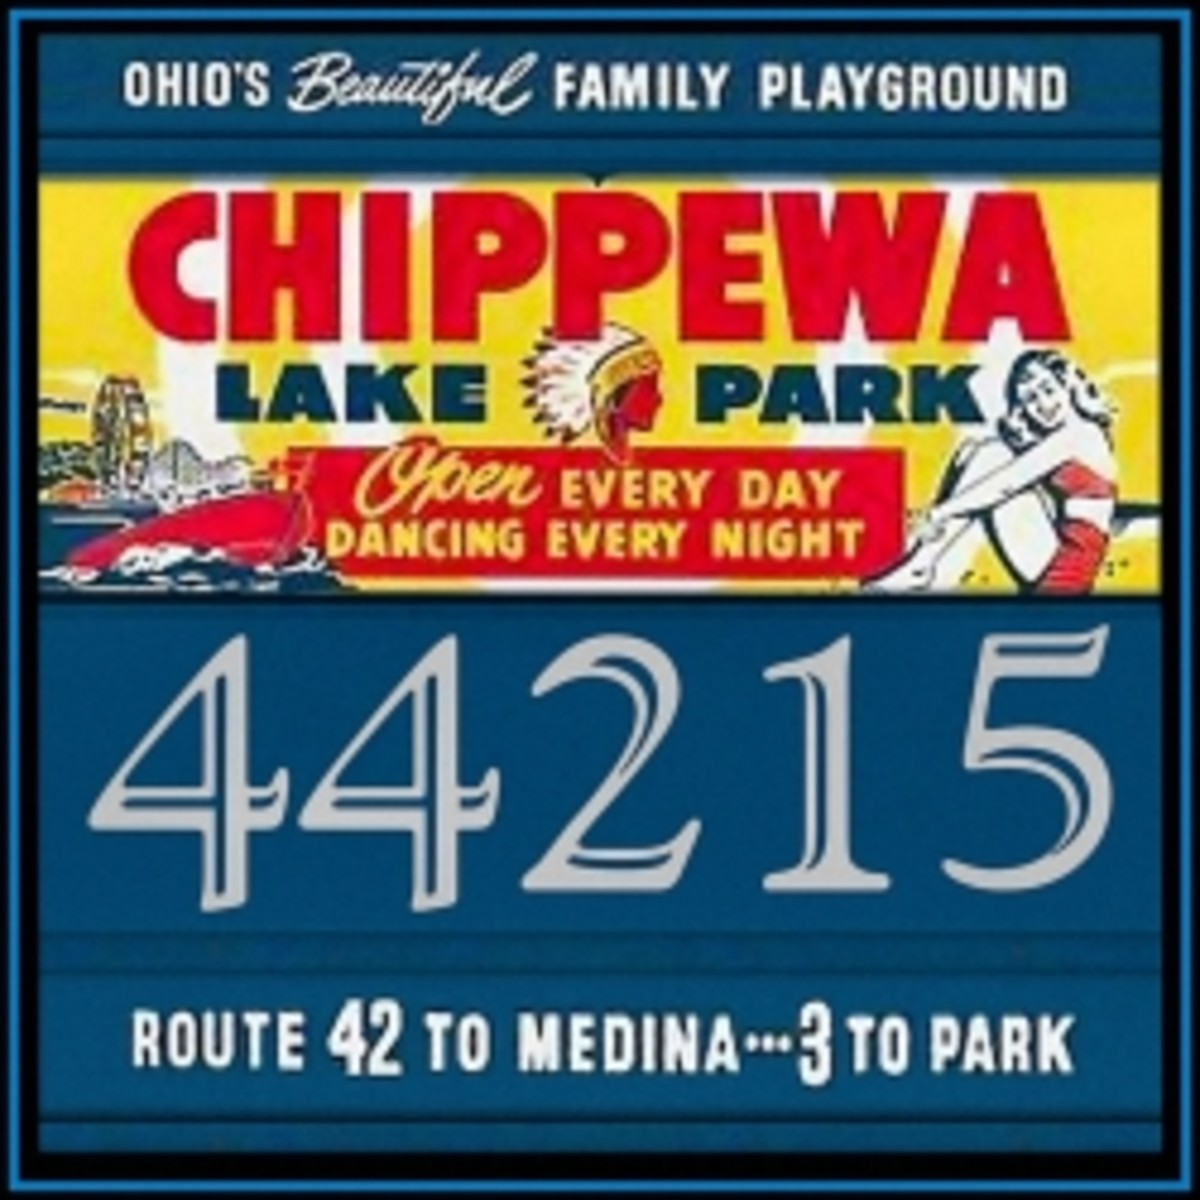 Chippewa Lake Park